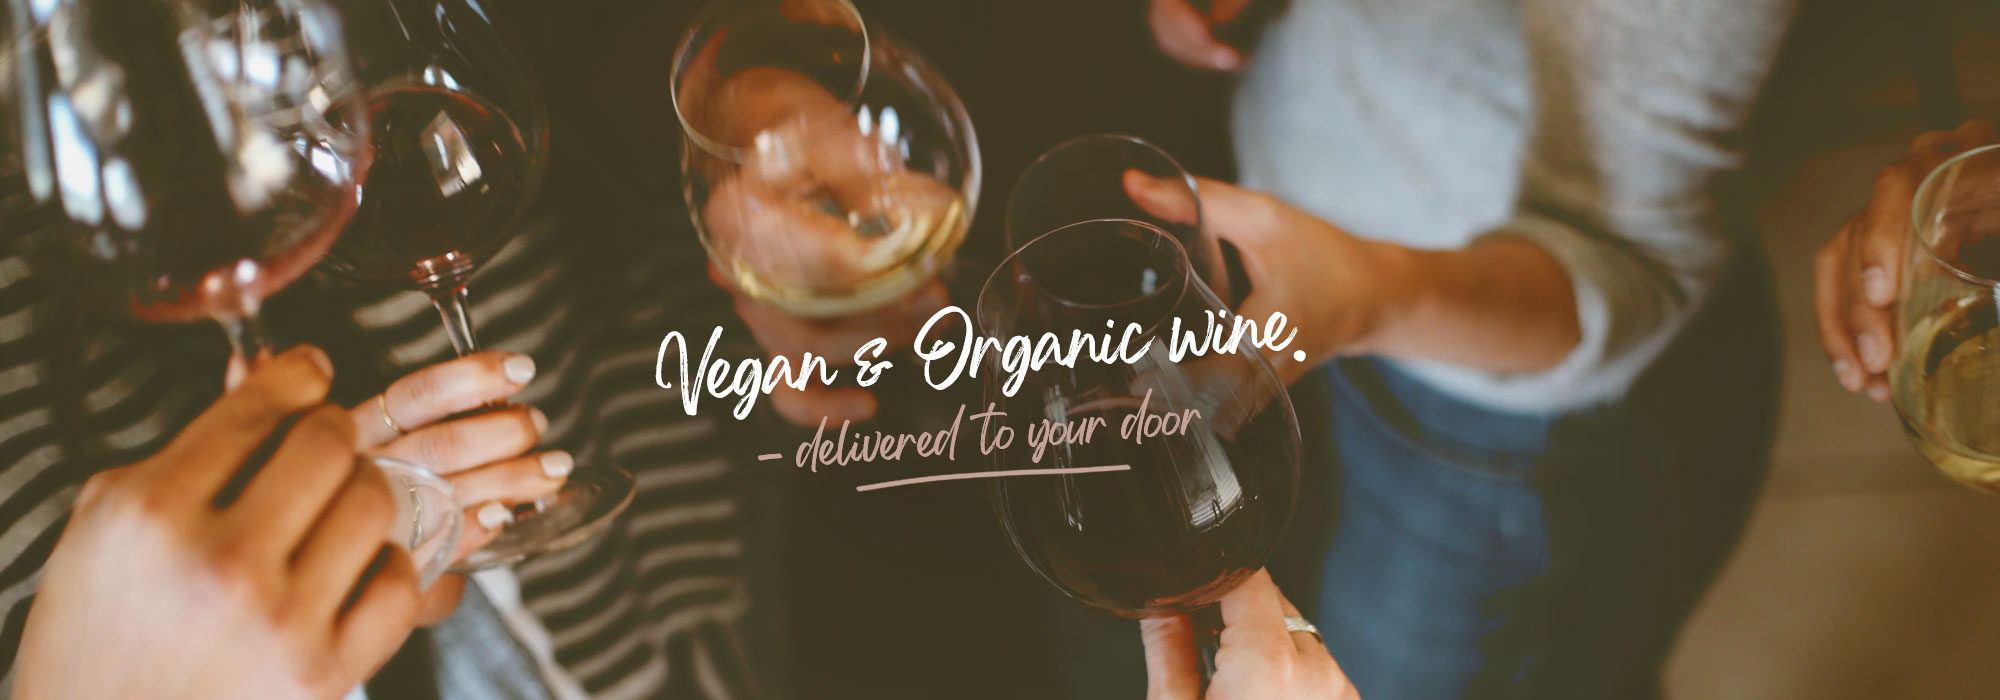 Vegan and Organic Wine Banner